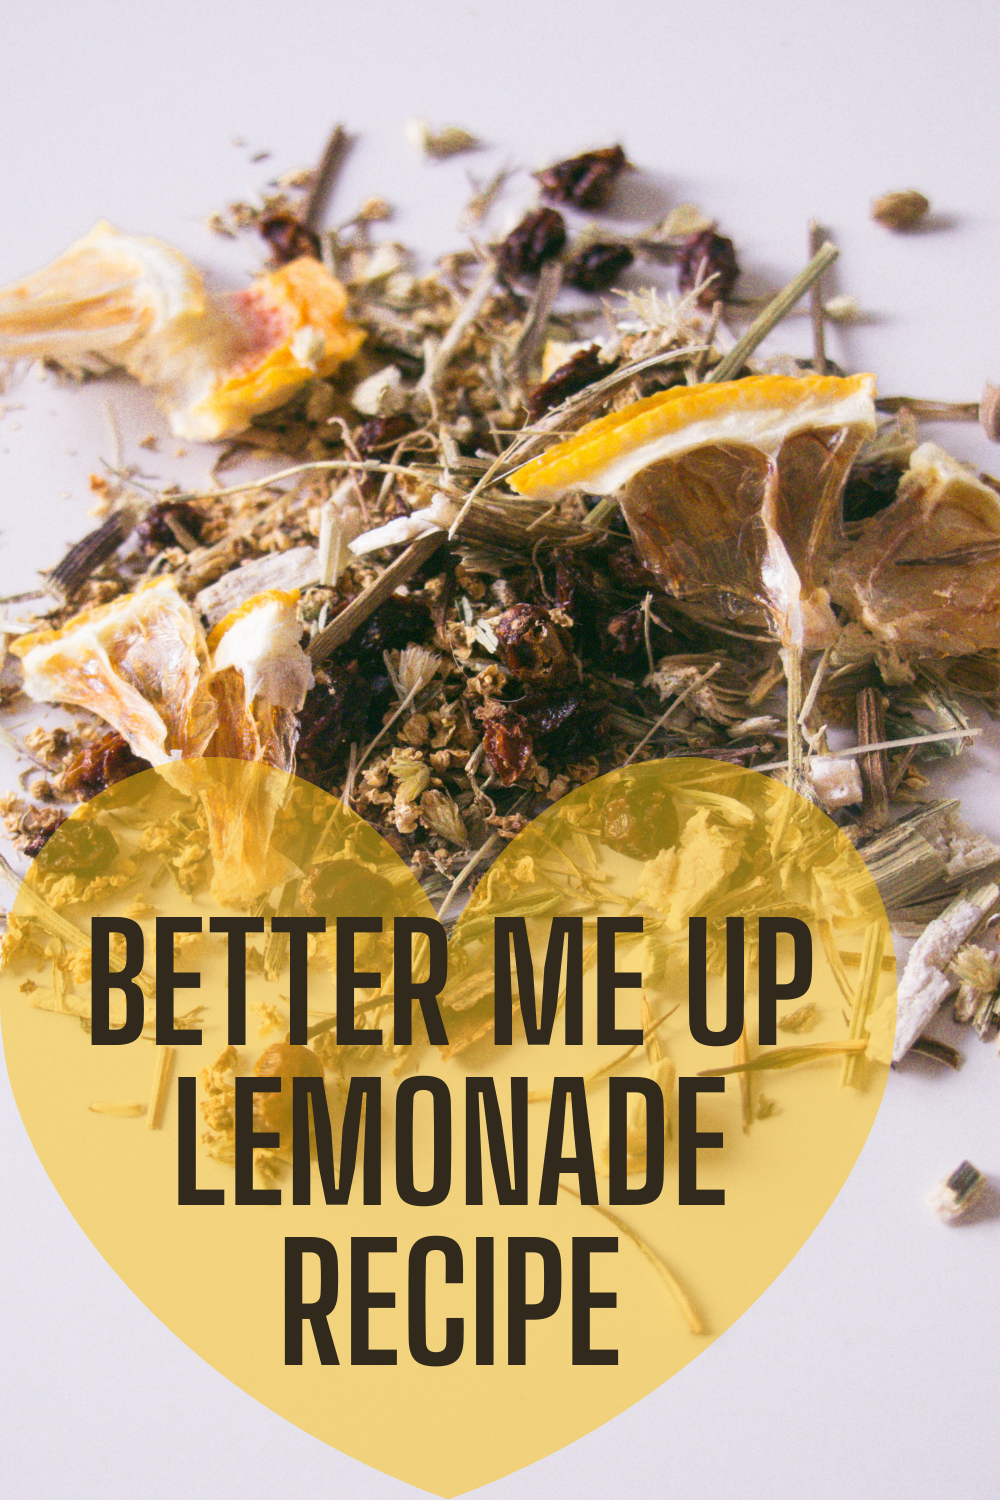 the photo shoes idyleaf immuity loose leaf tea and the text better me up lemonade recipe